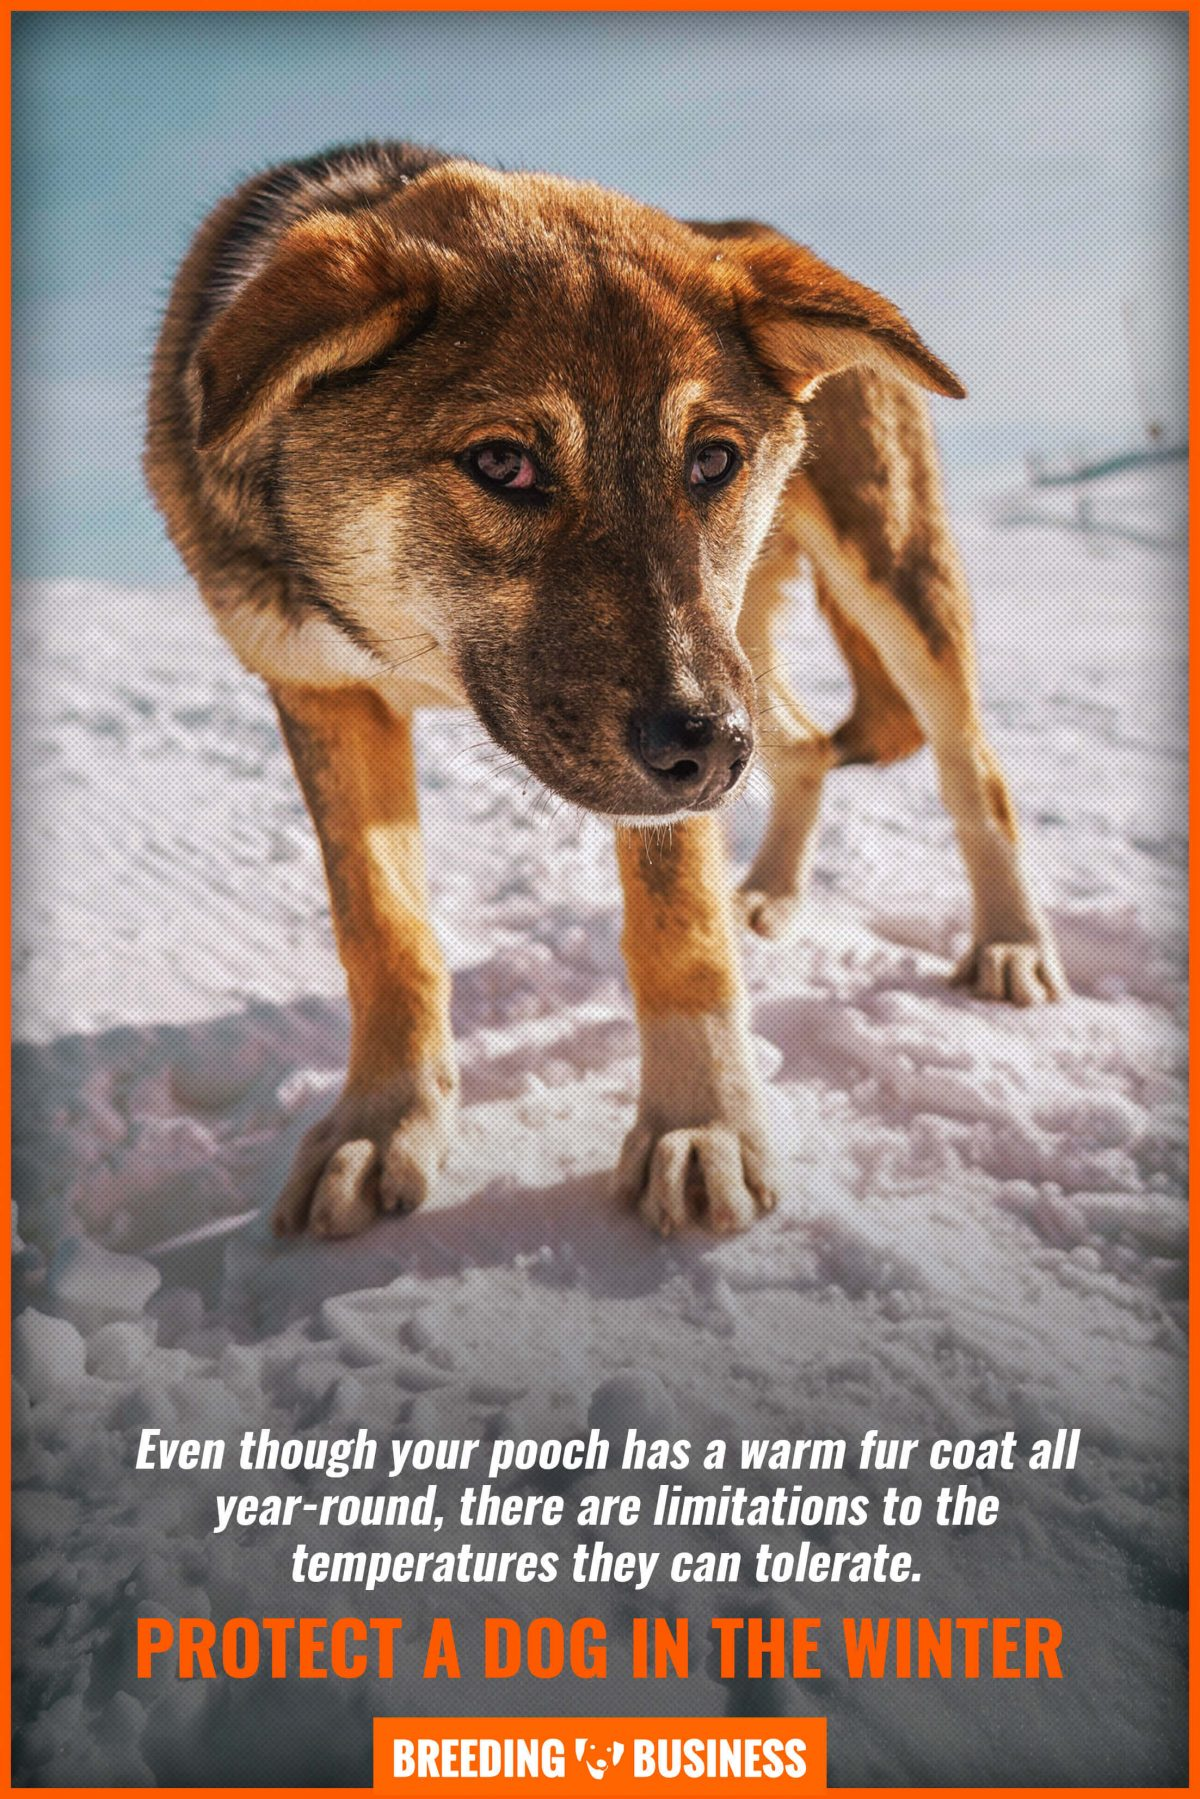 protect a dog in the winter